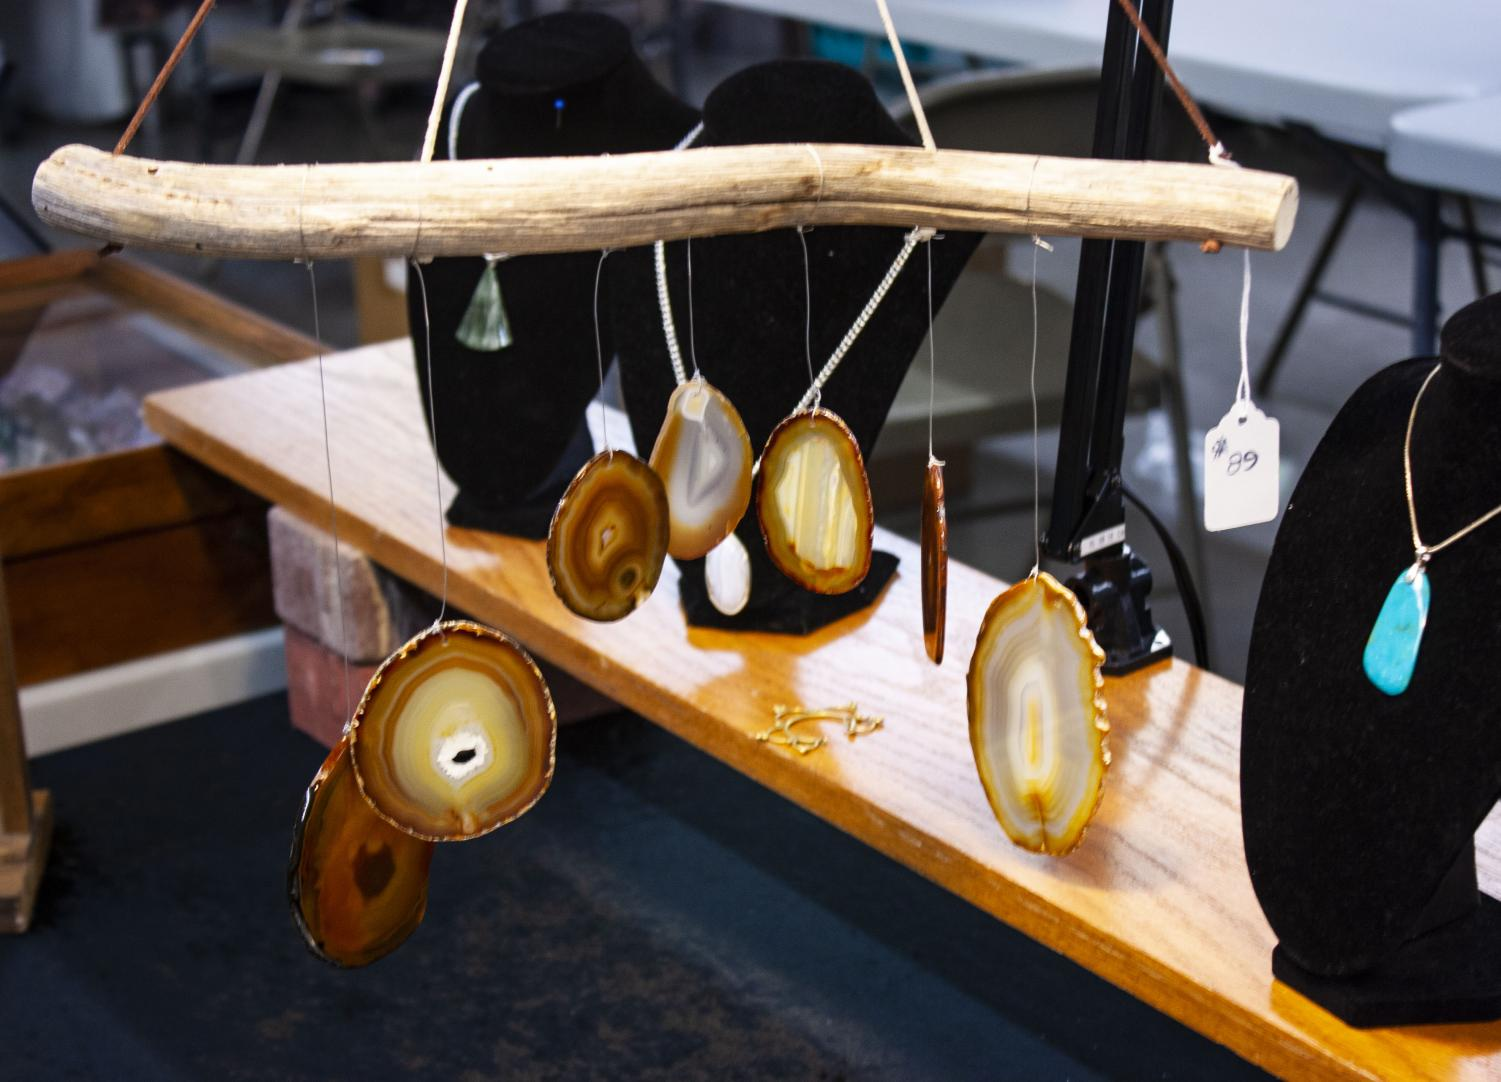 These+agates+were+included+in+a+decorative+hanging+piece.